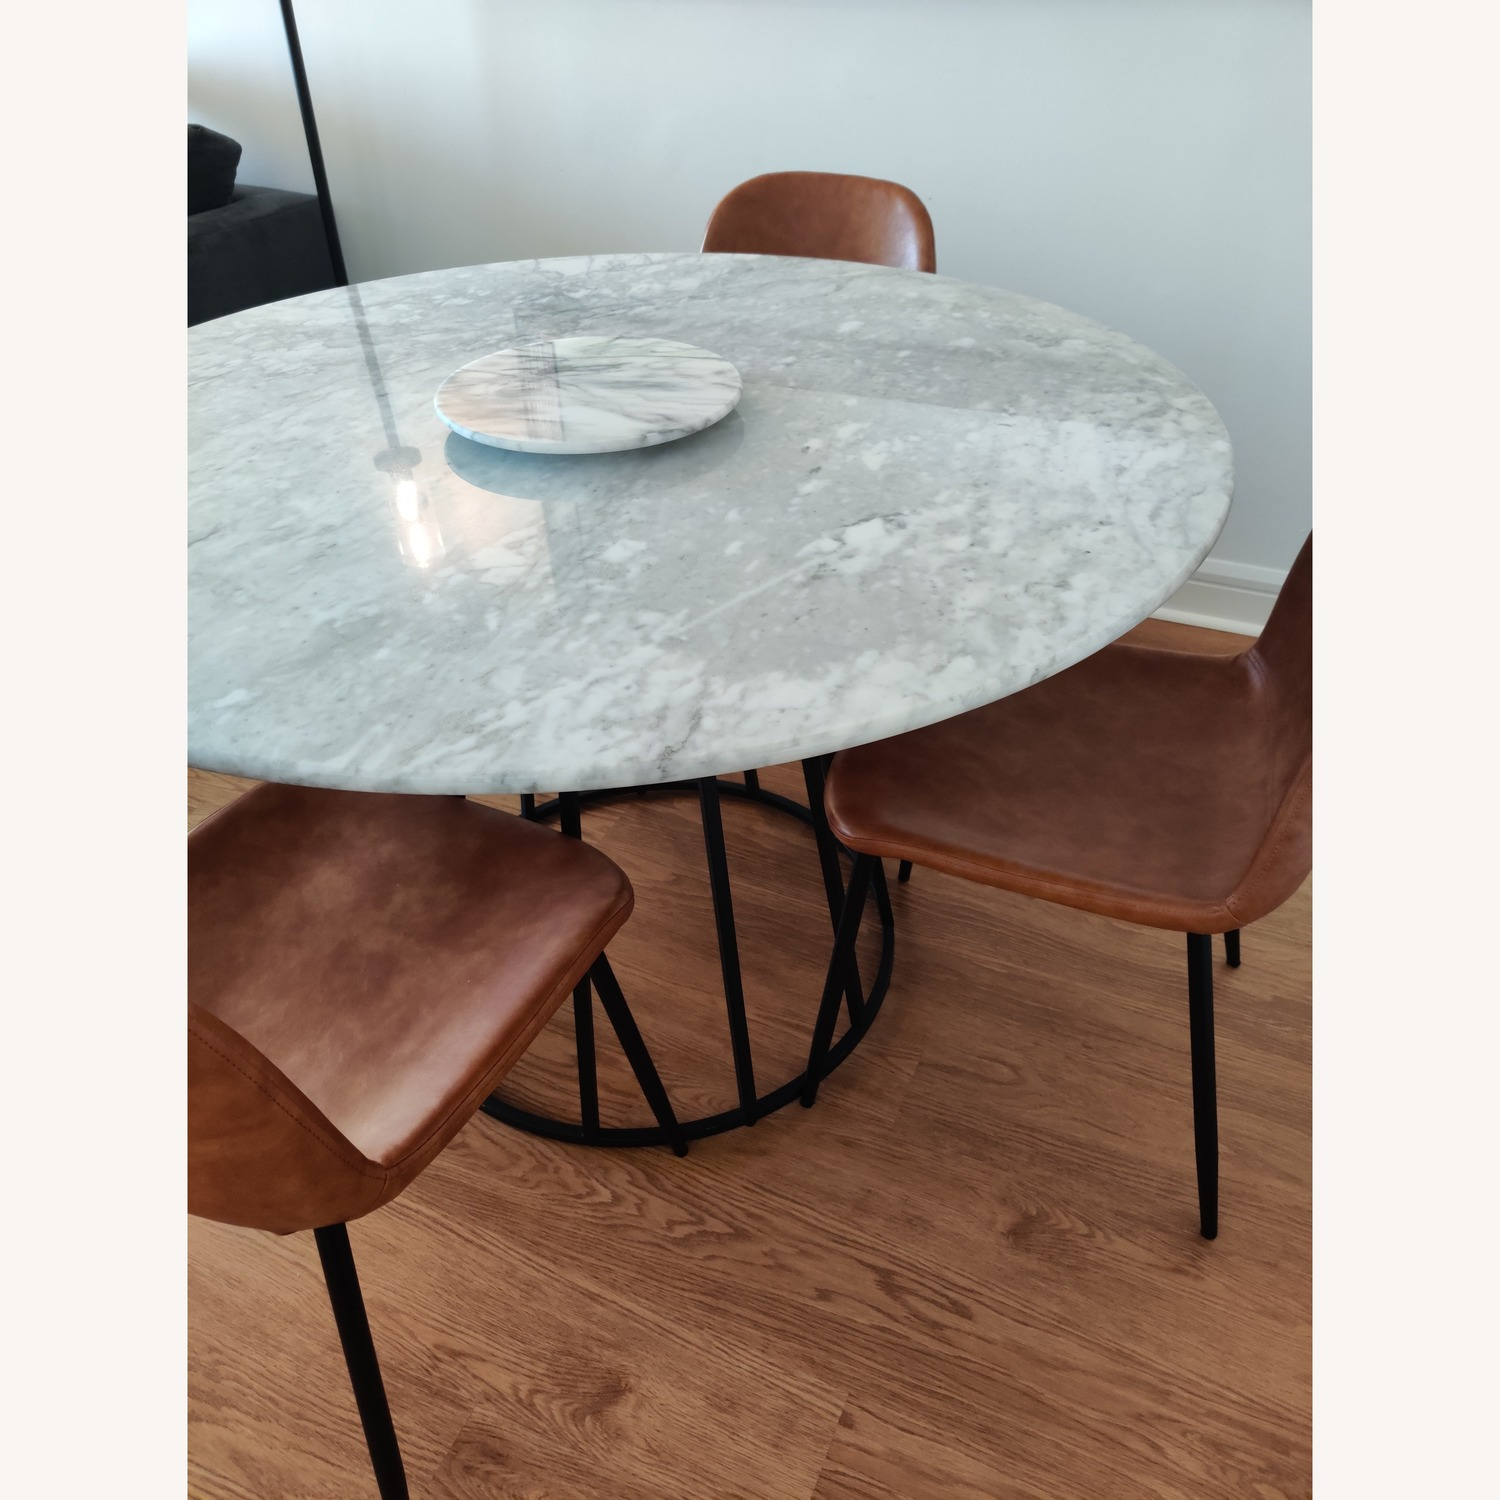 Macy's Round Marble Dining Table w/ 4 Chairs - image-2